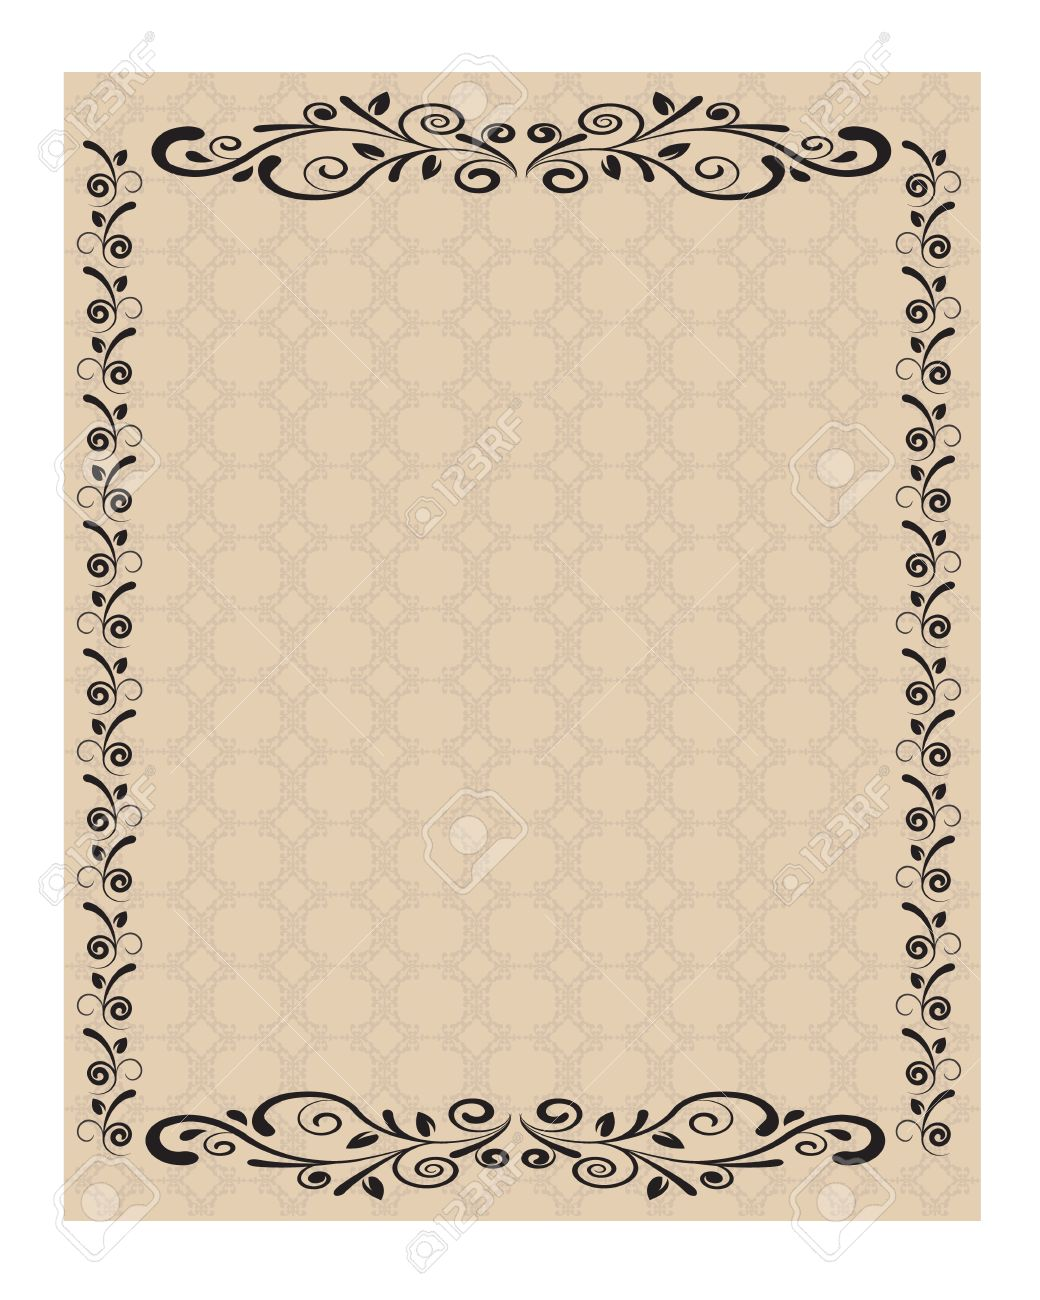 Sheet Of Paper Decorated With Ornaments And Curled Lines Royalty ...